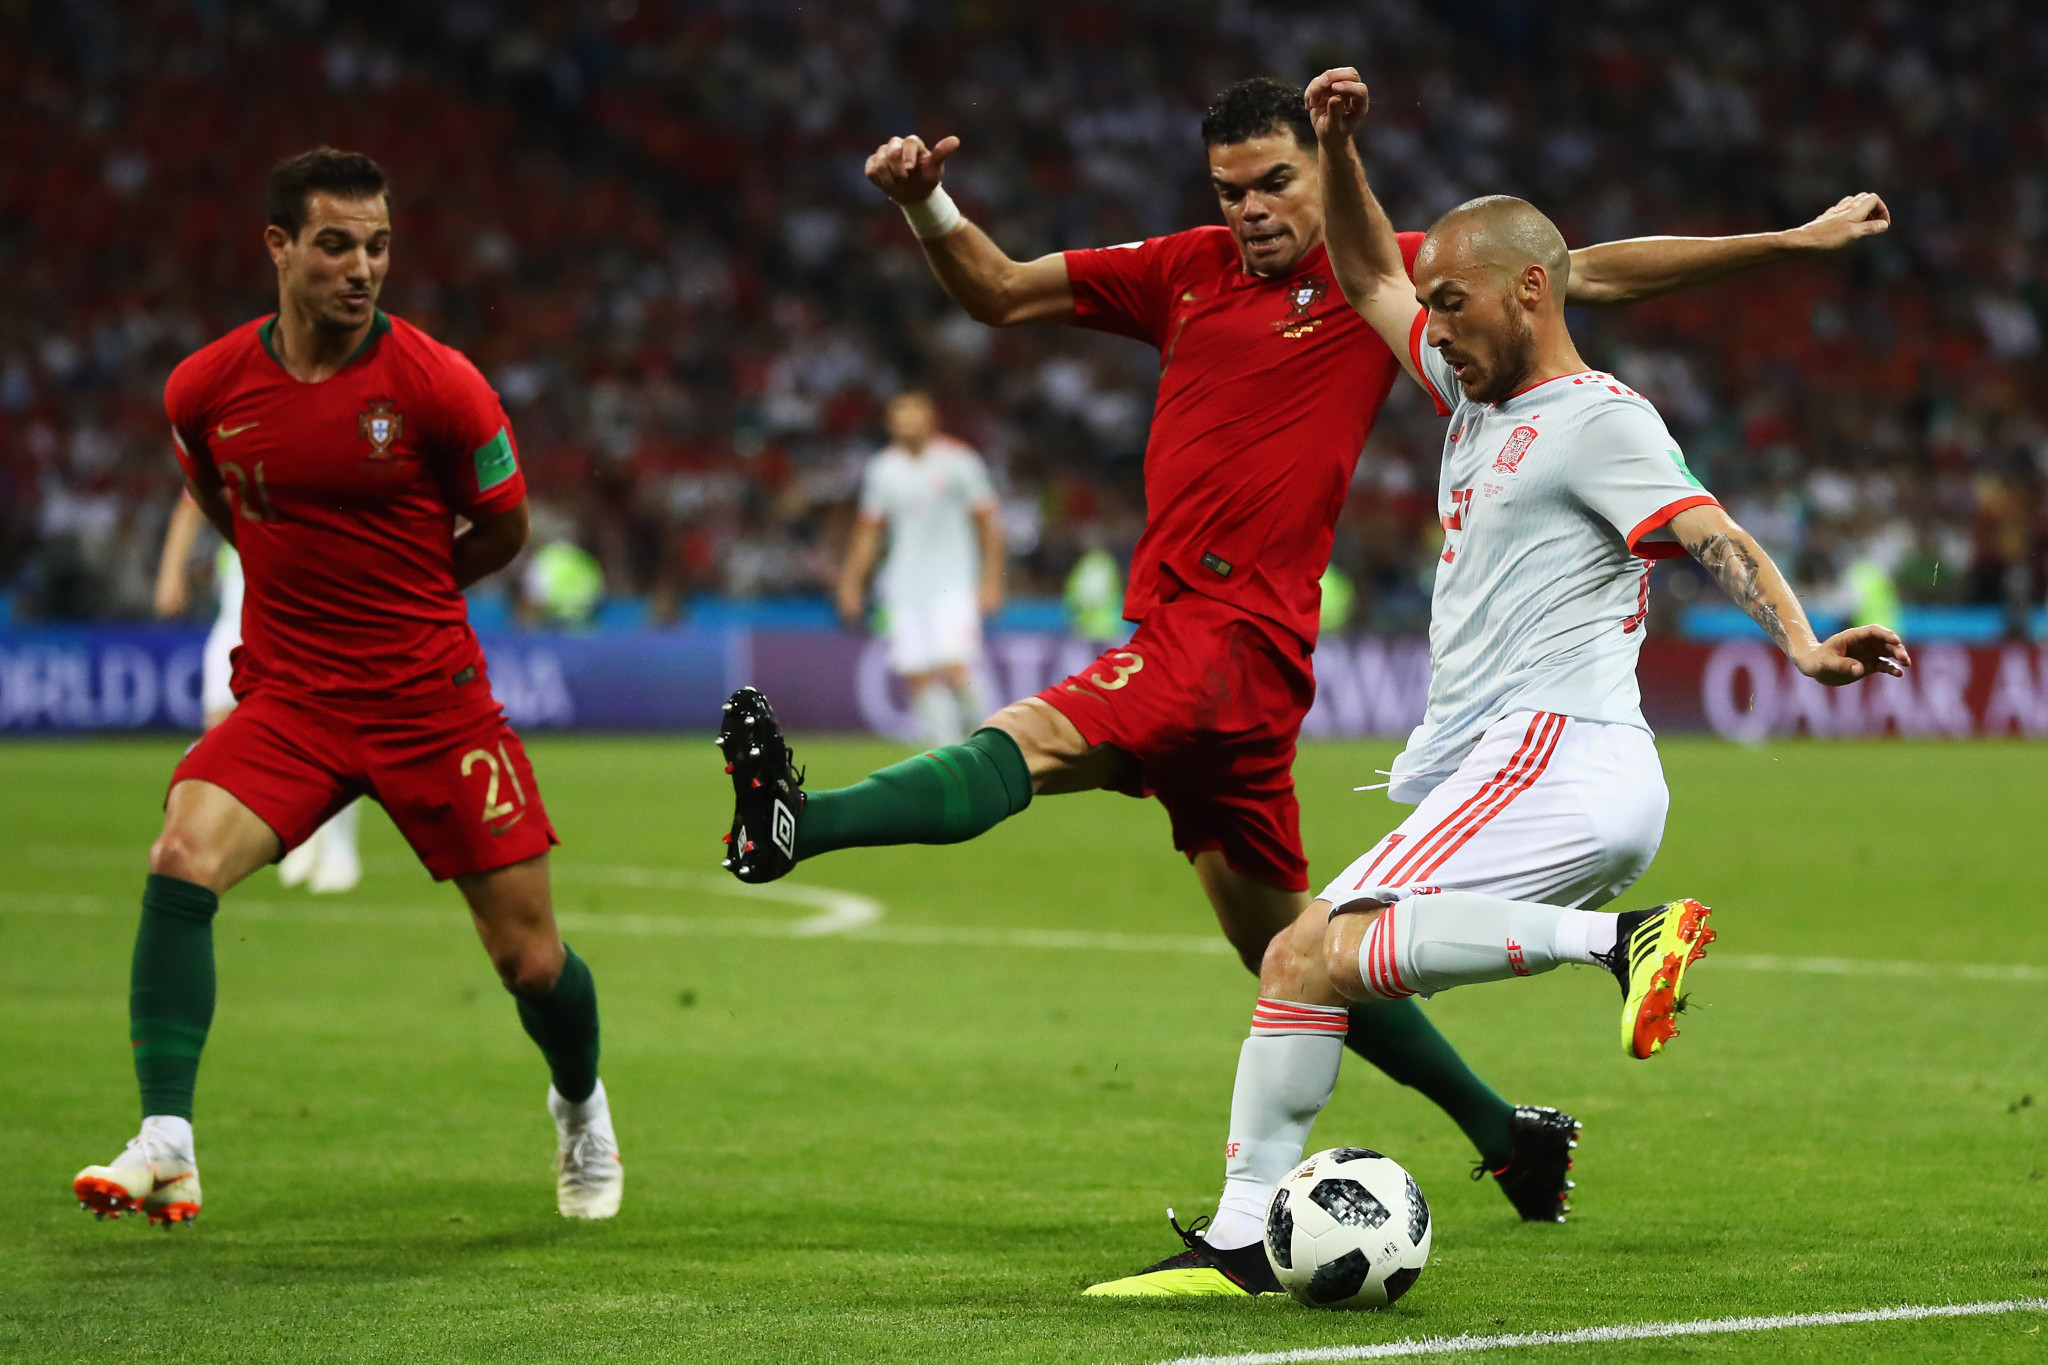 Spain and Portugal to conduct analysis on possible bid for 2030 FIFA World Cup